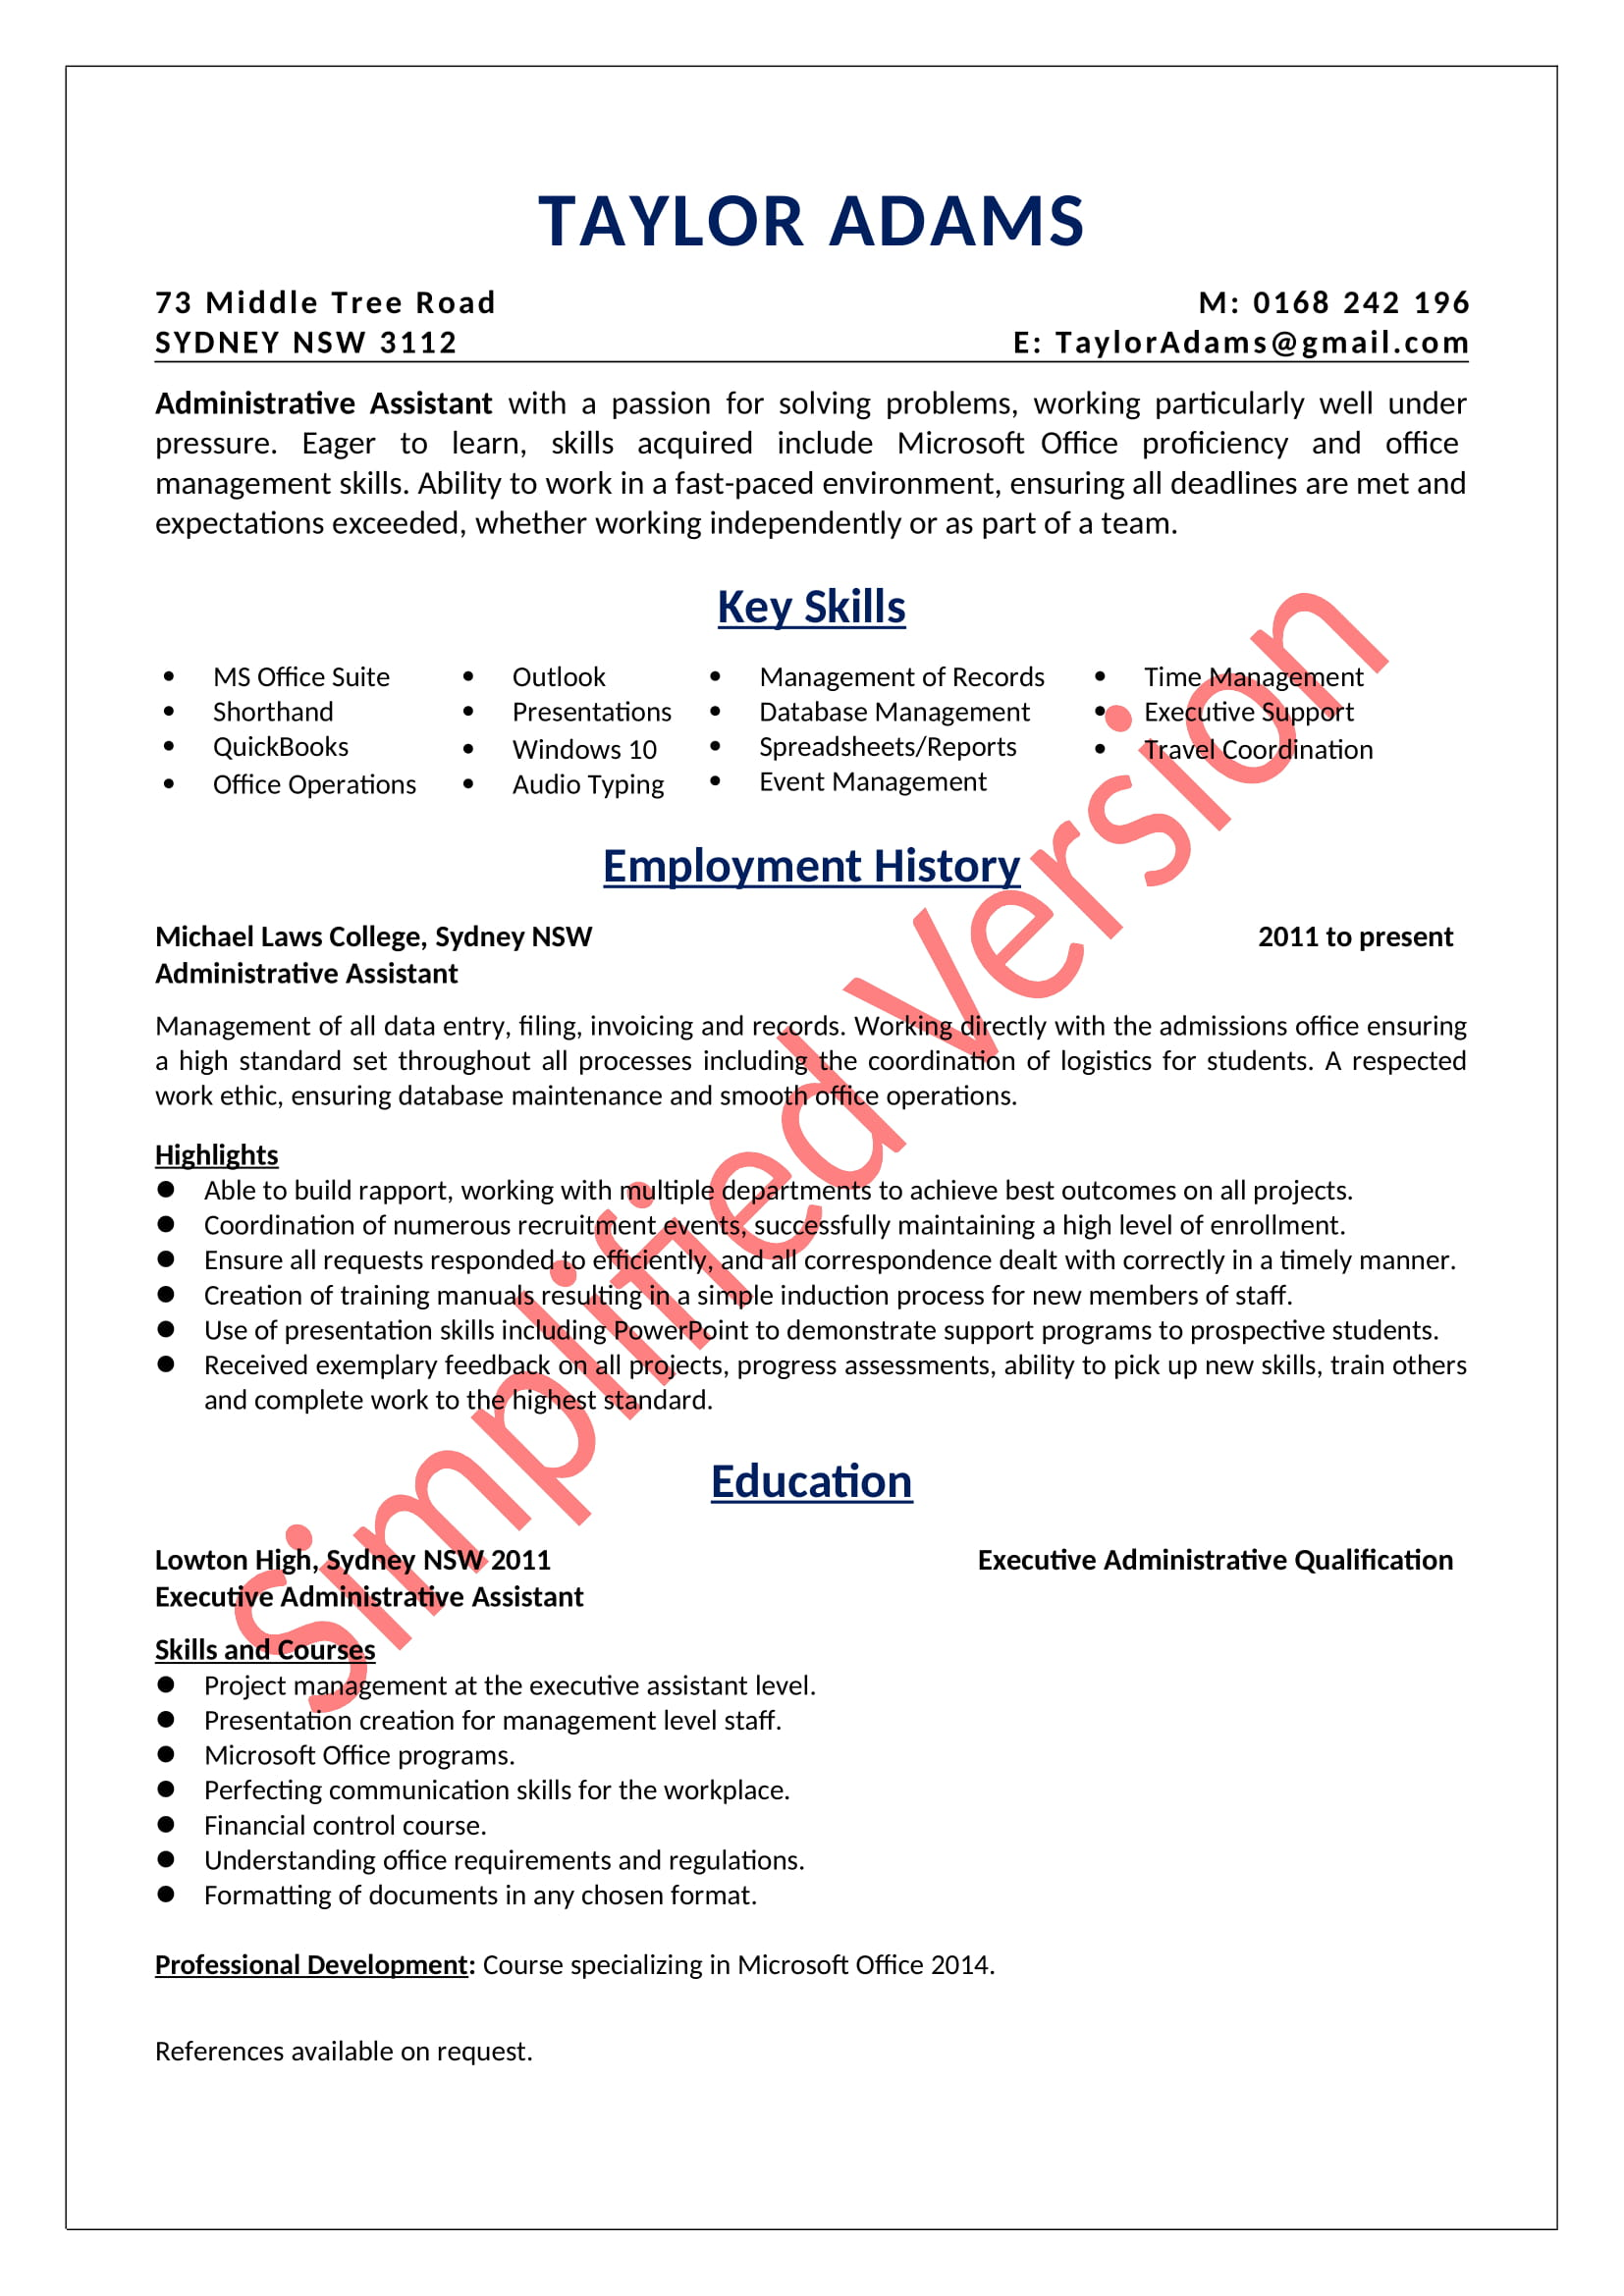 an administrative assistant resume sample absolutely free summary example for sv college Resume Resume Summary Example For An Administrative Assistant